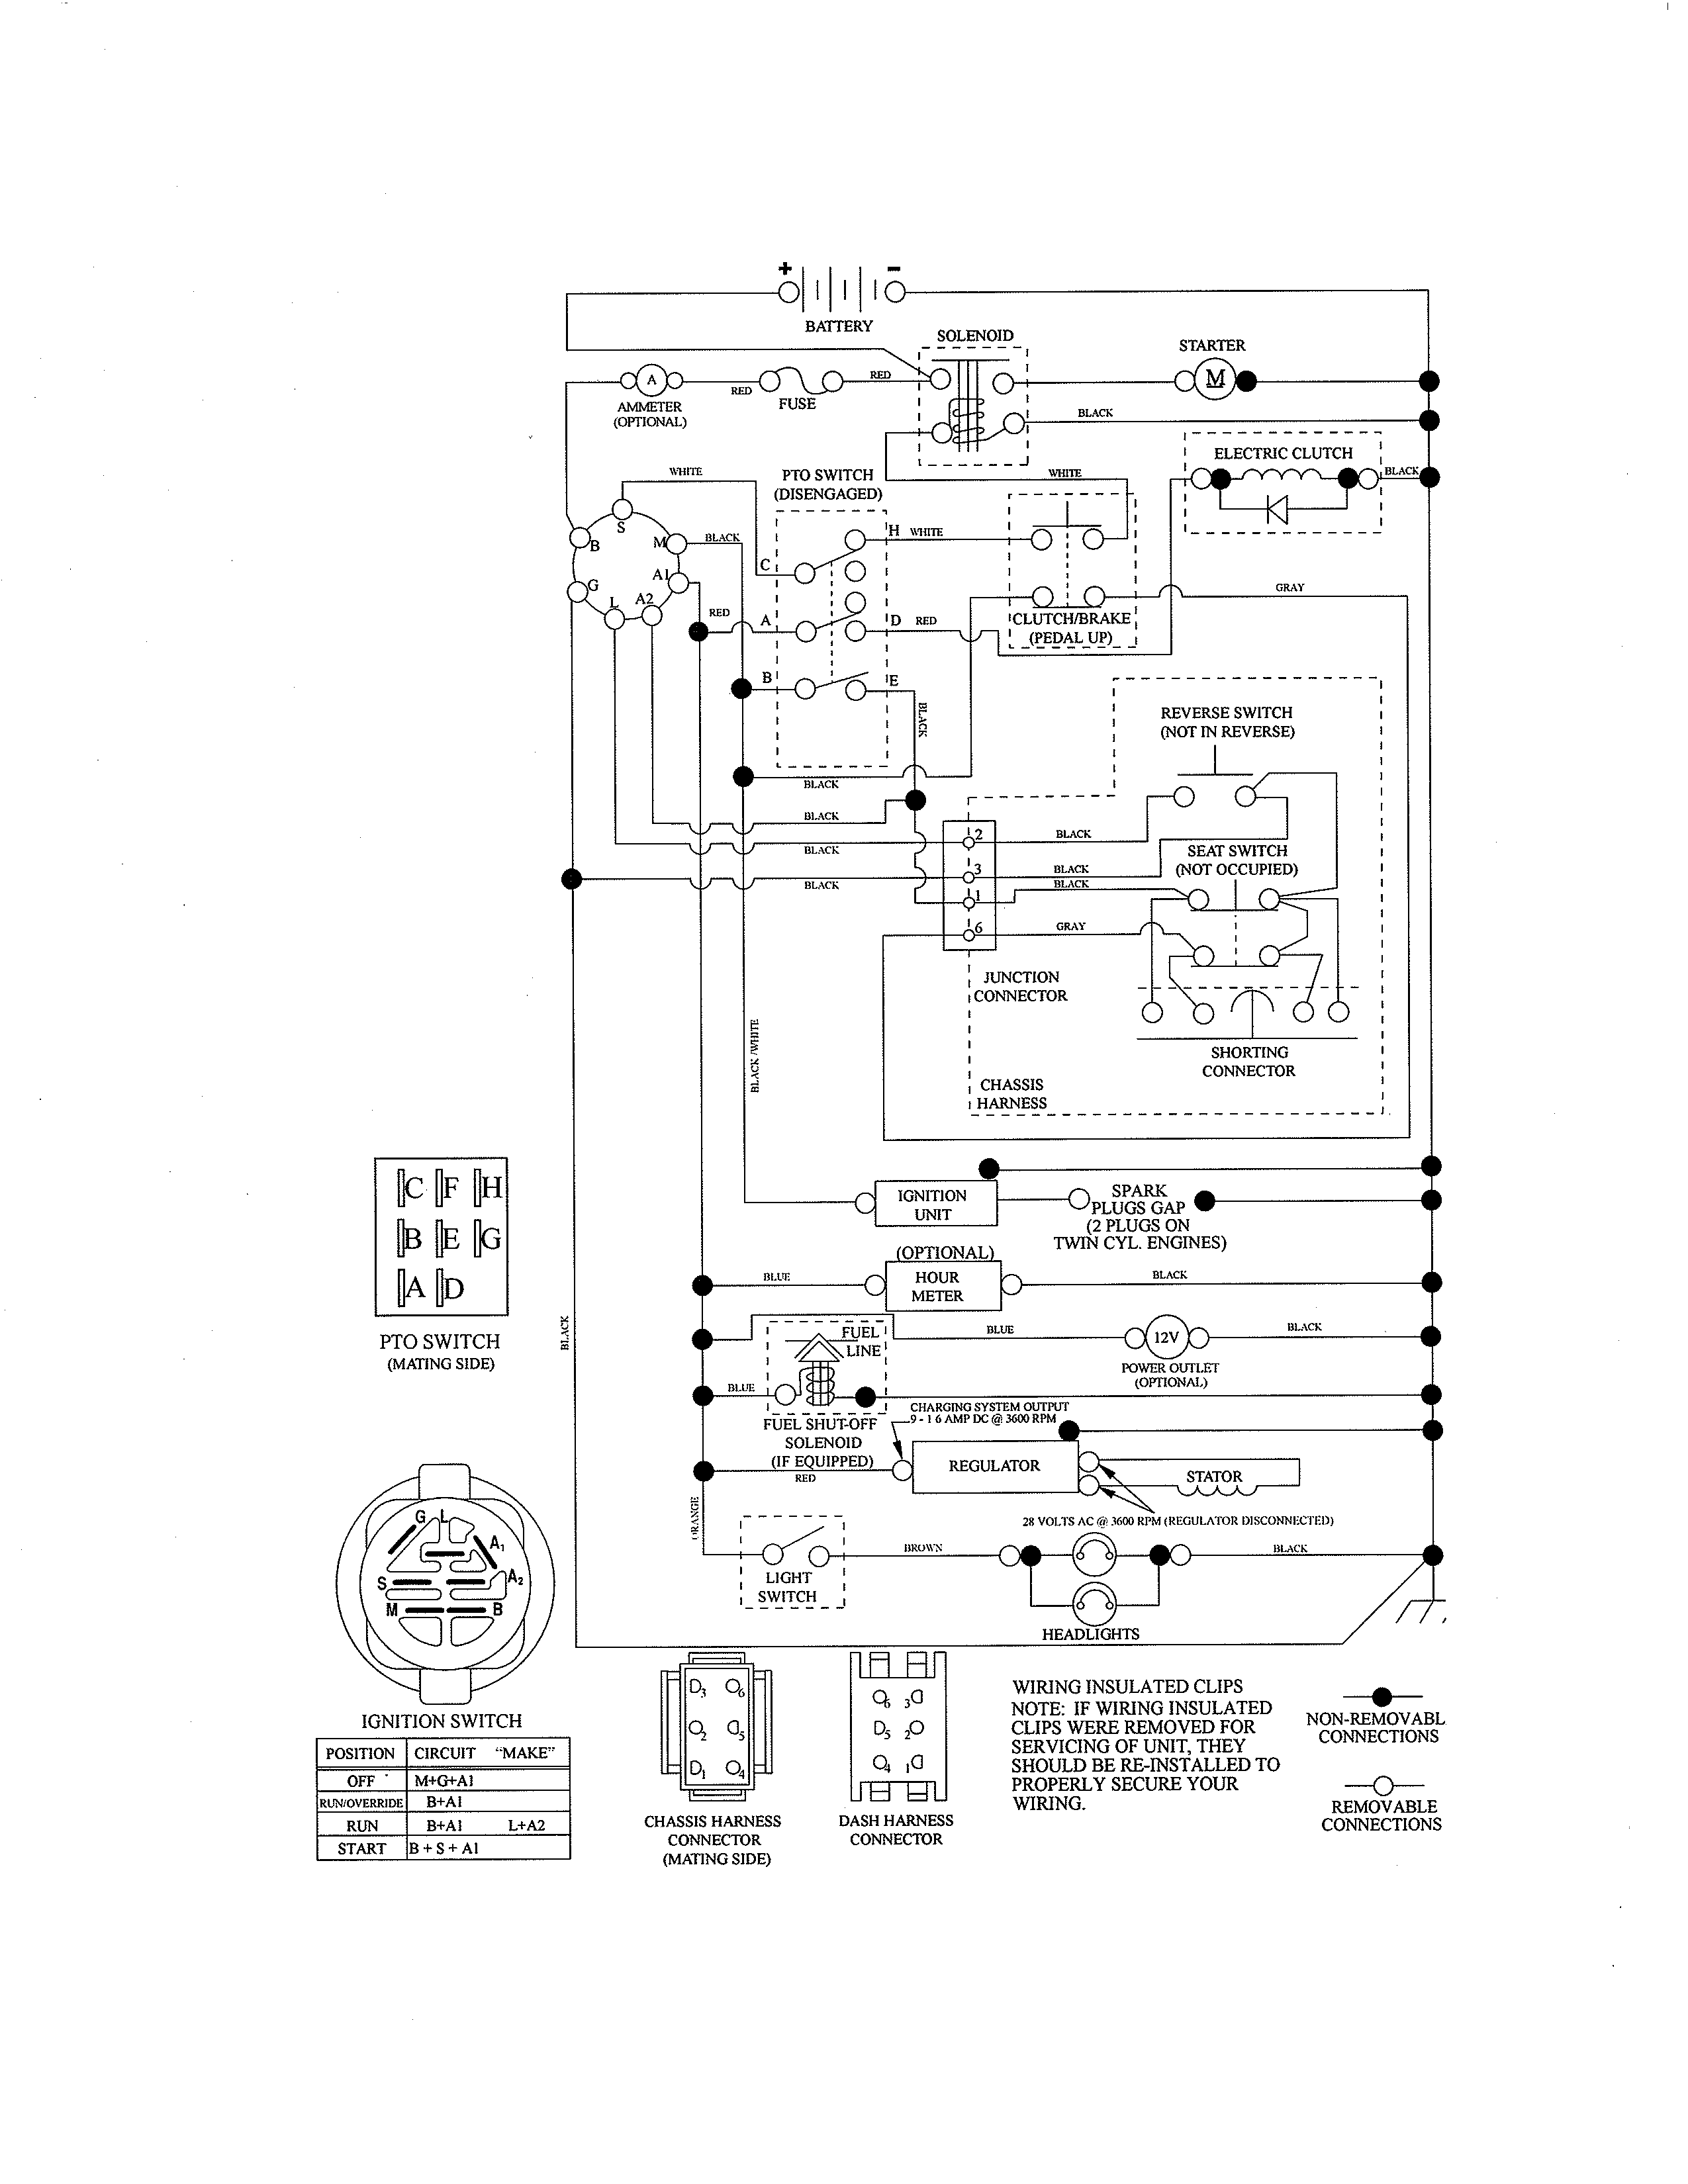 Wiring Diagram For 917 Sears Mower